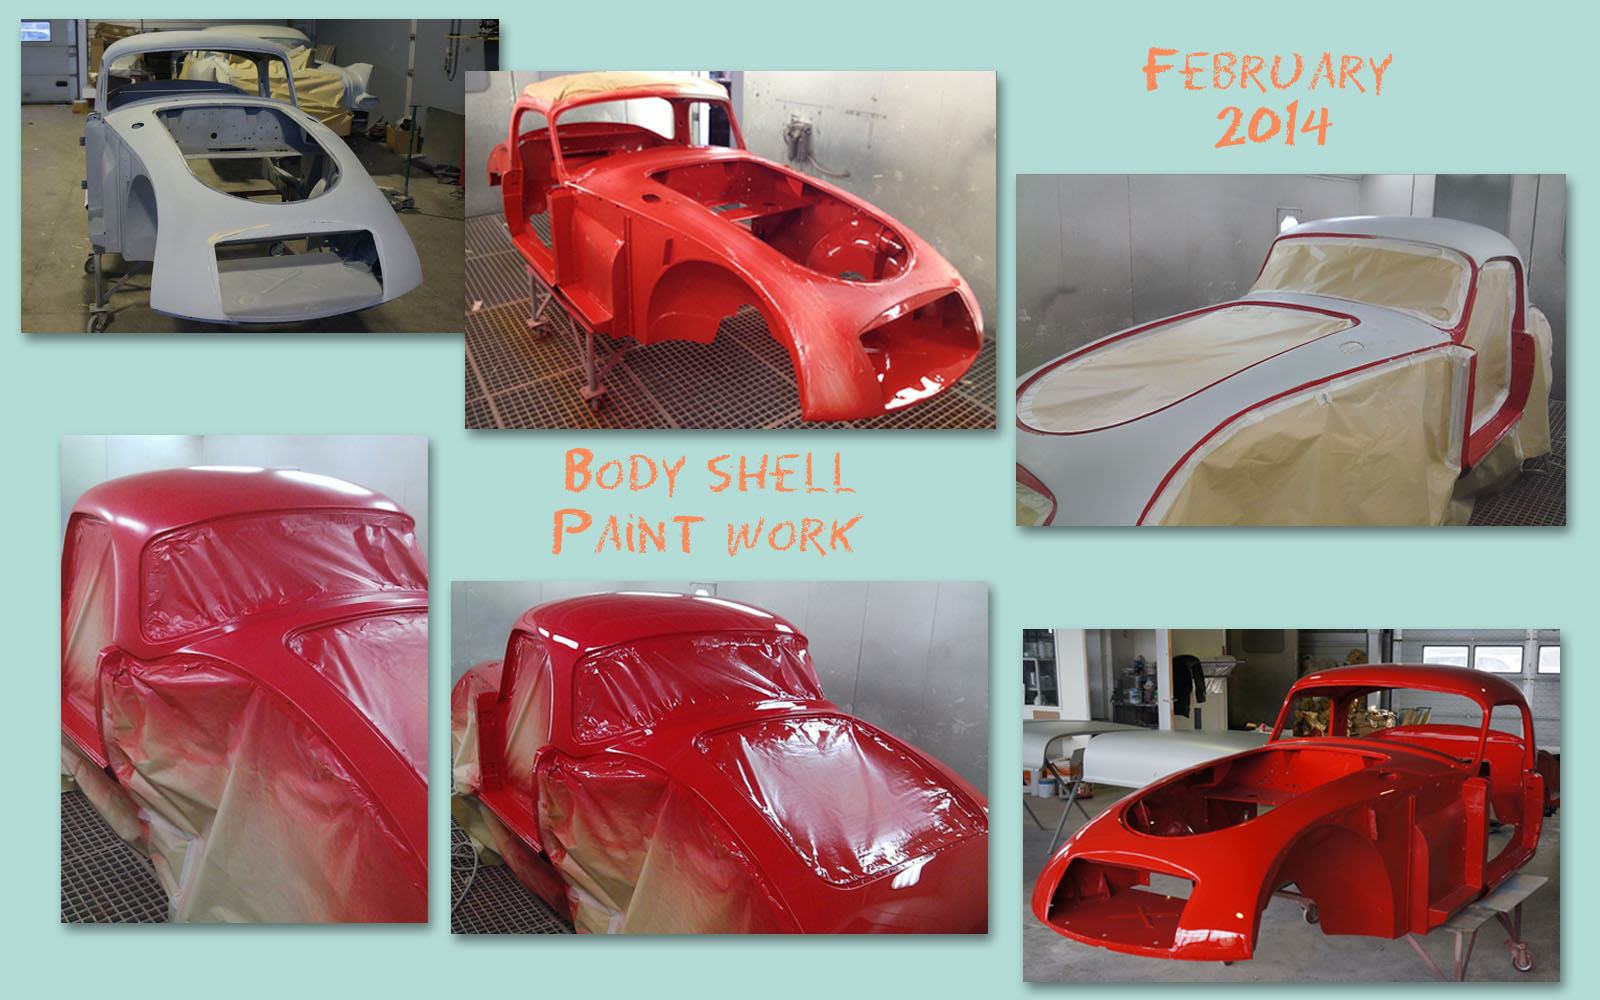 Bodyshell painting